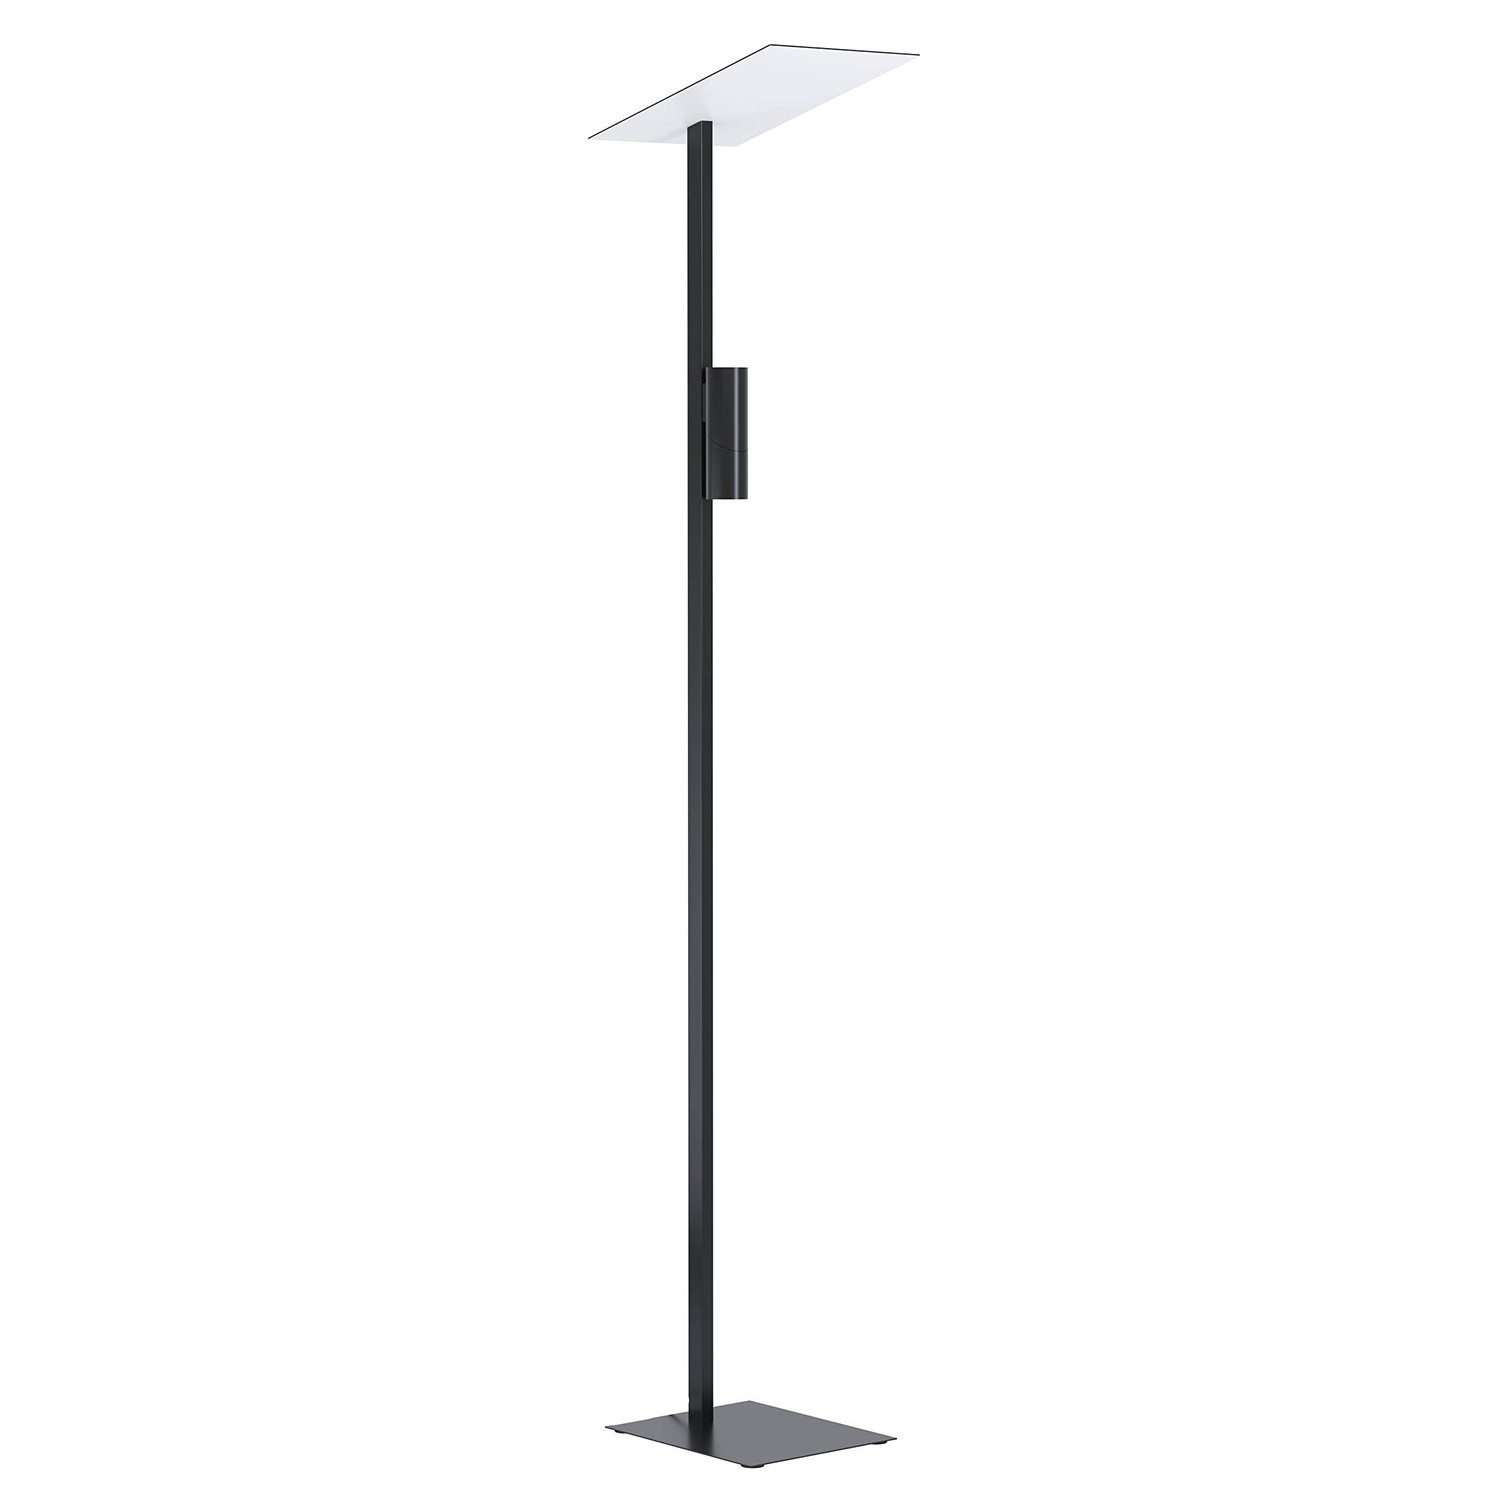 home24 LED-Stehleuchte Budensea